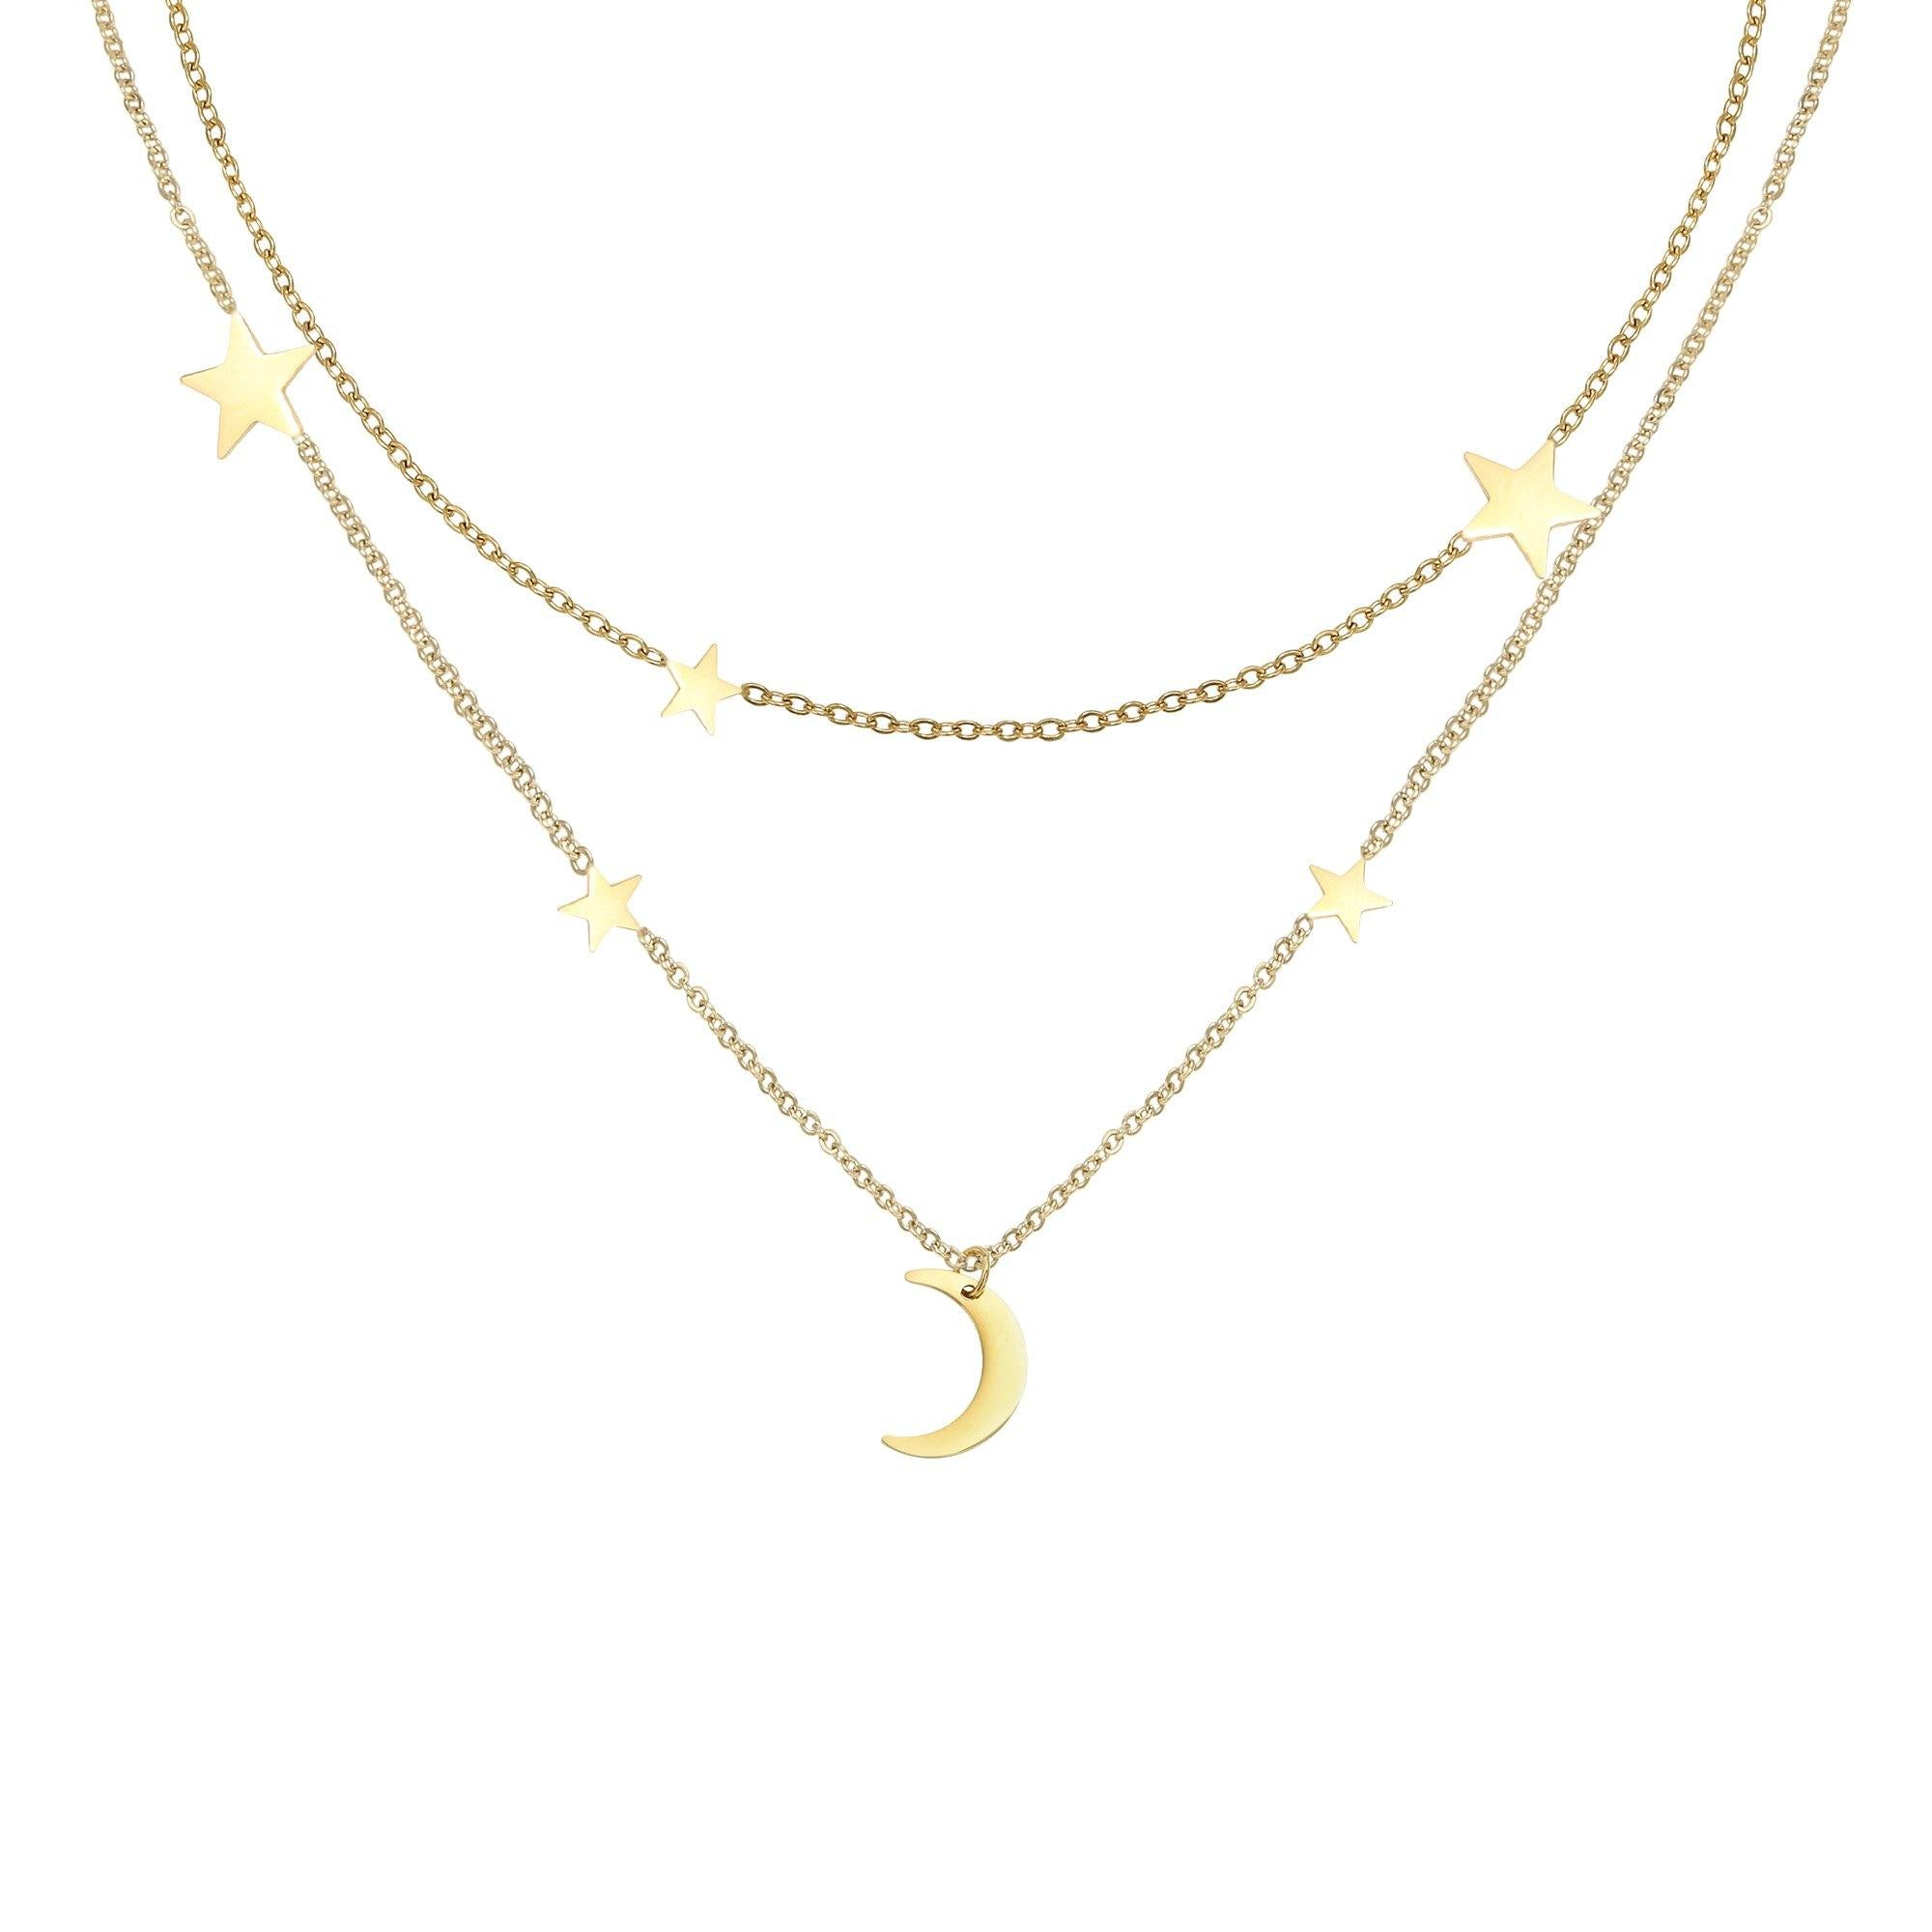 DAZZLING DREAM NECKLACE - ZARIA.SE